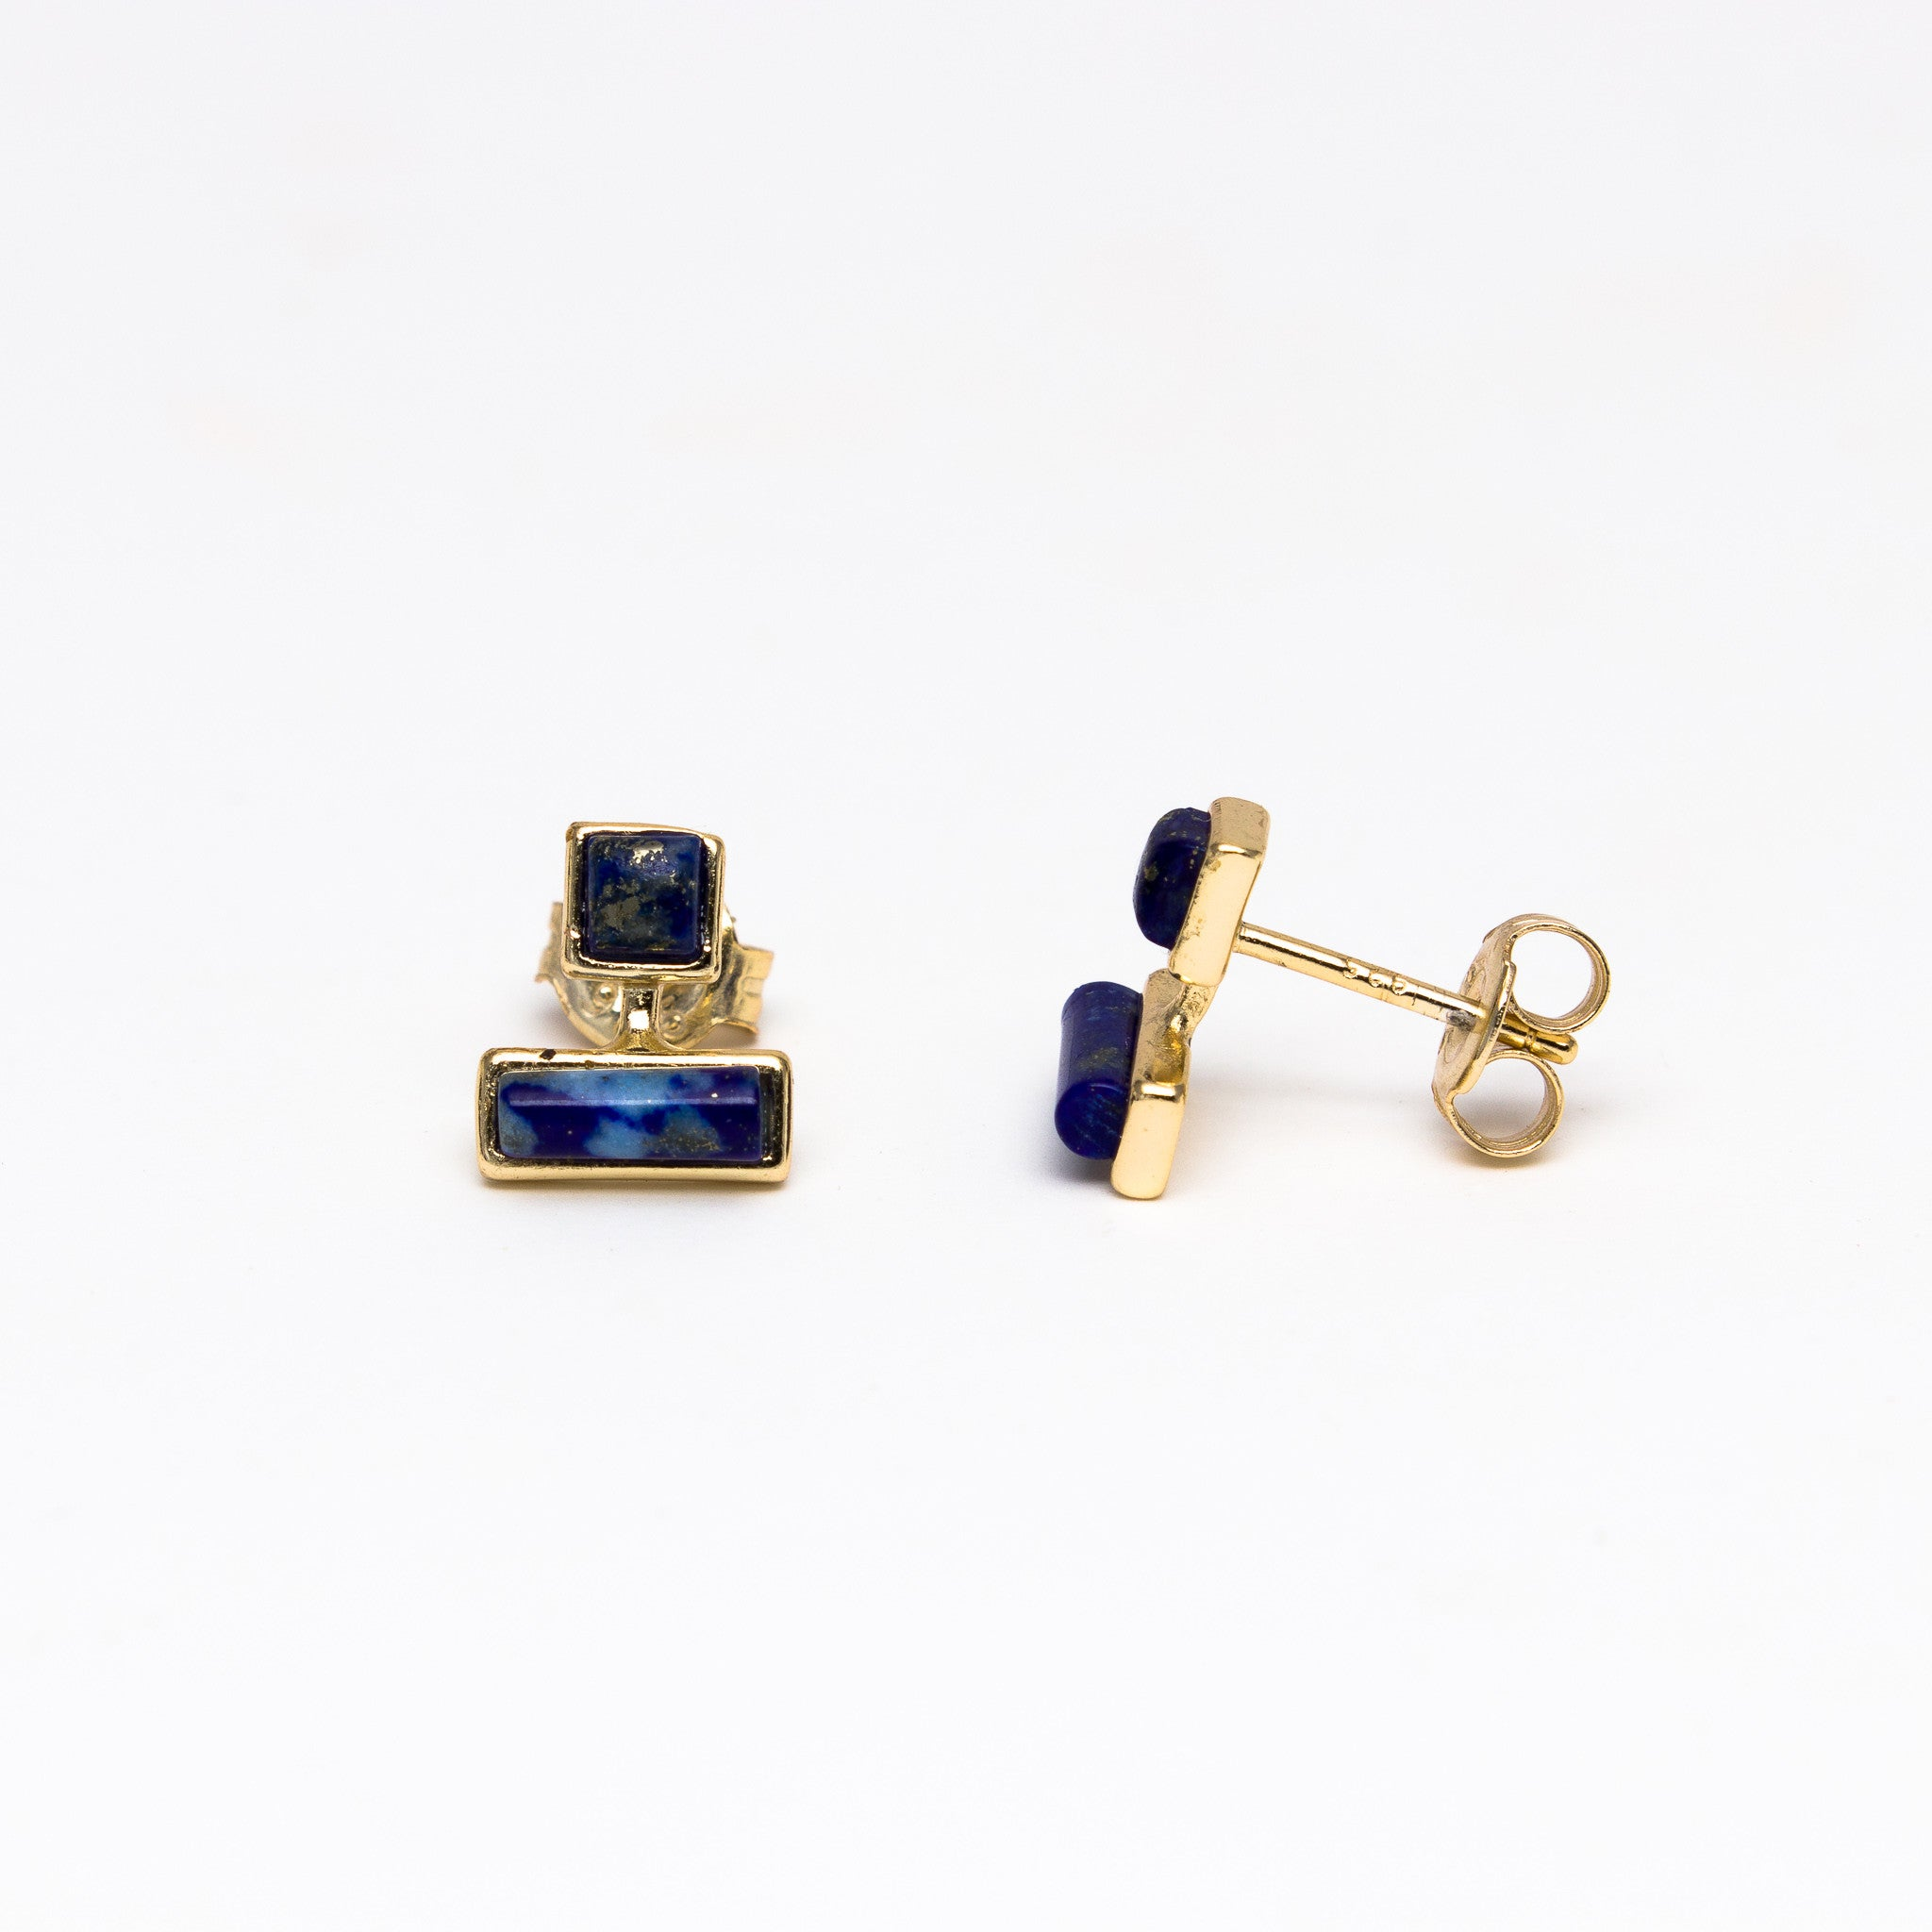 earrings sterling product silver stud watches jewelry cushion shaped free lapis